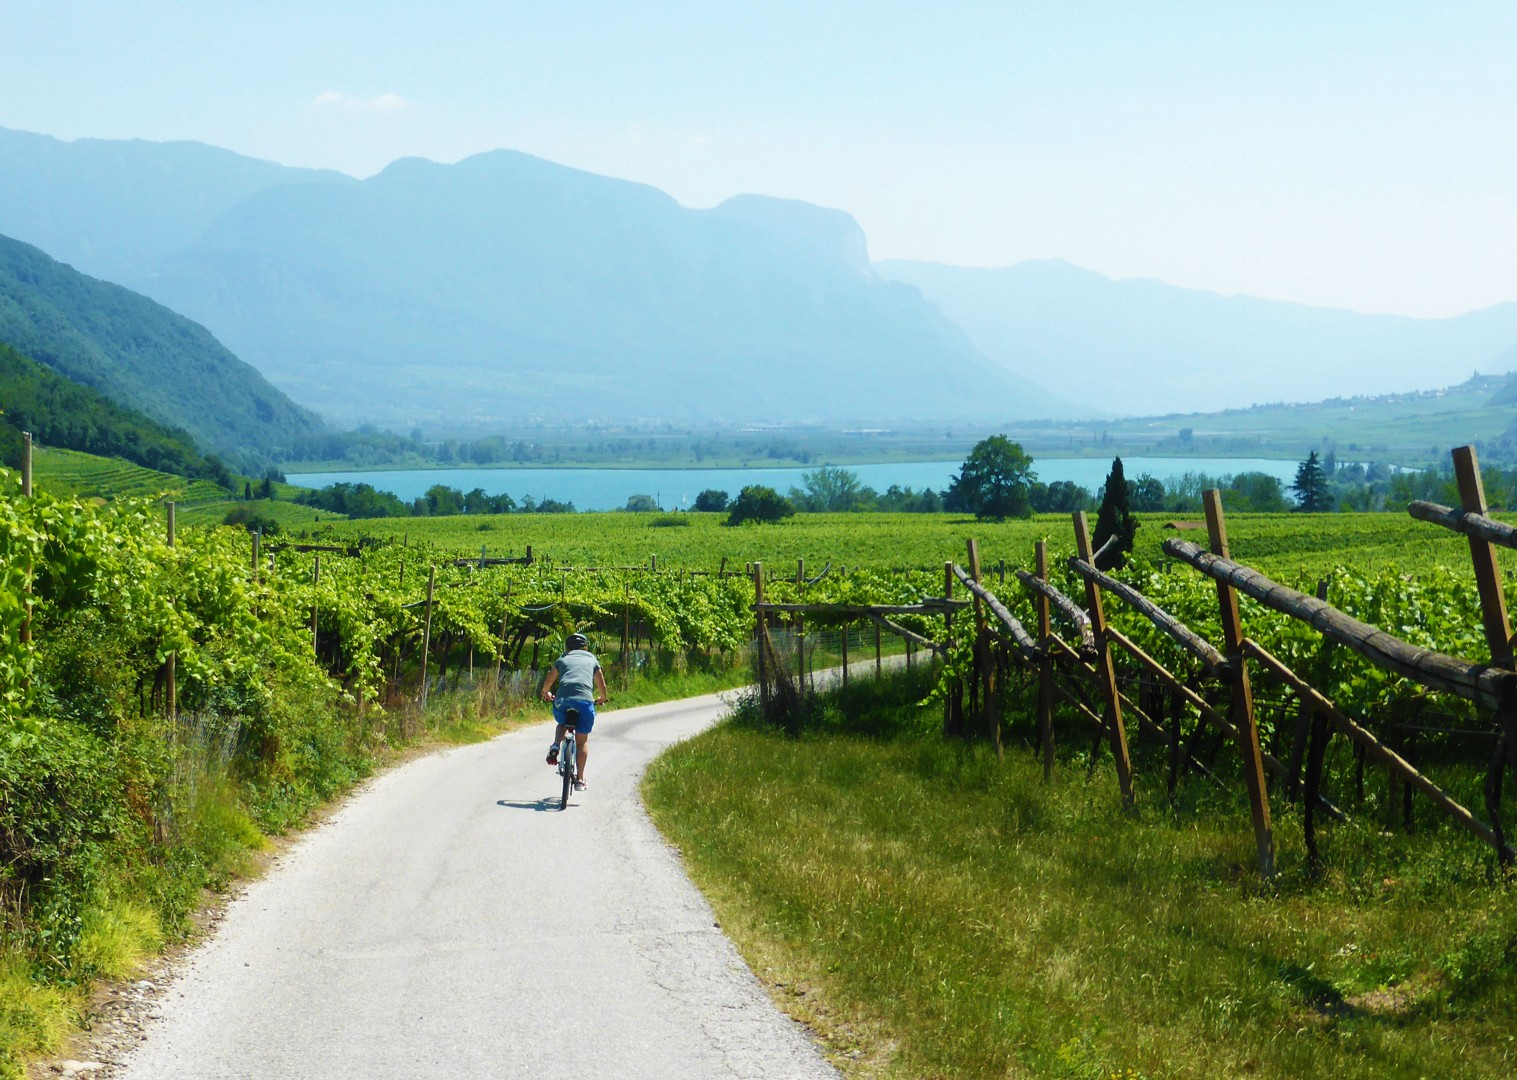 cultural-leisurely-self-guided-cycling-adventure-italy.jpg - Italy - La Via Claudia - Self-Guided Leisure Cycling Holiday - Leisure Cycling